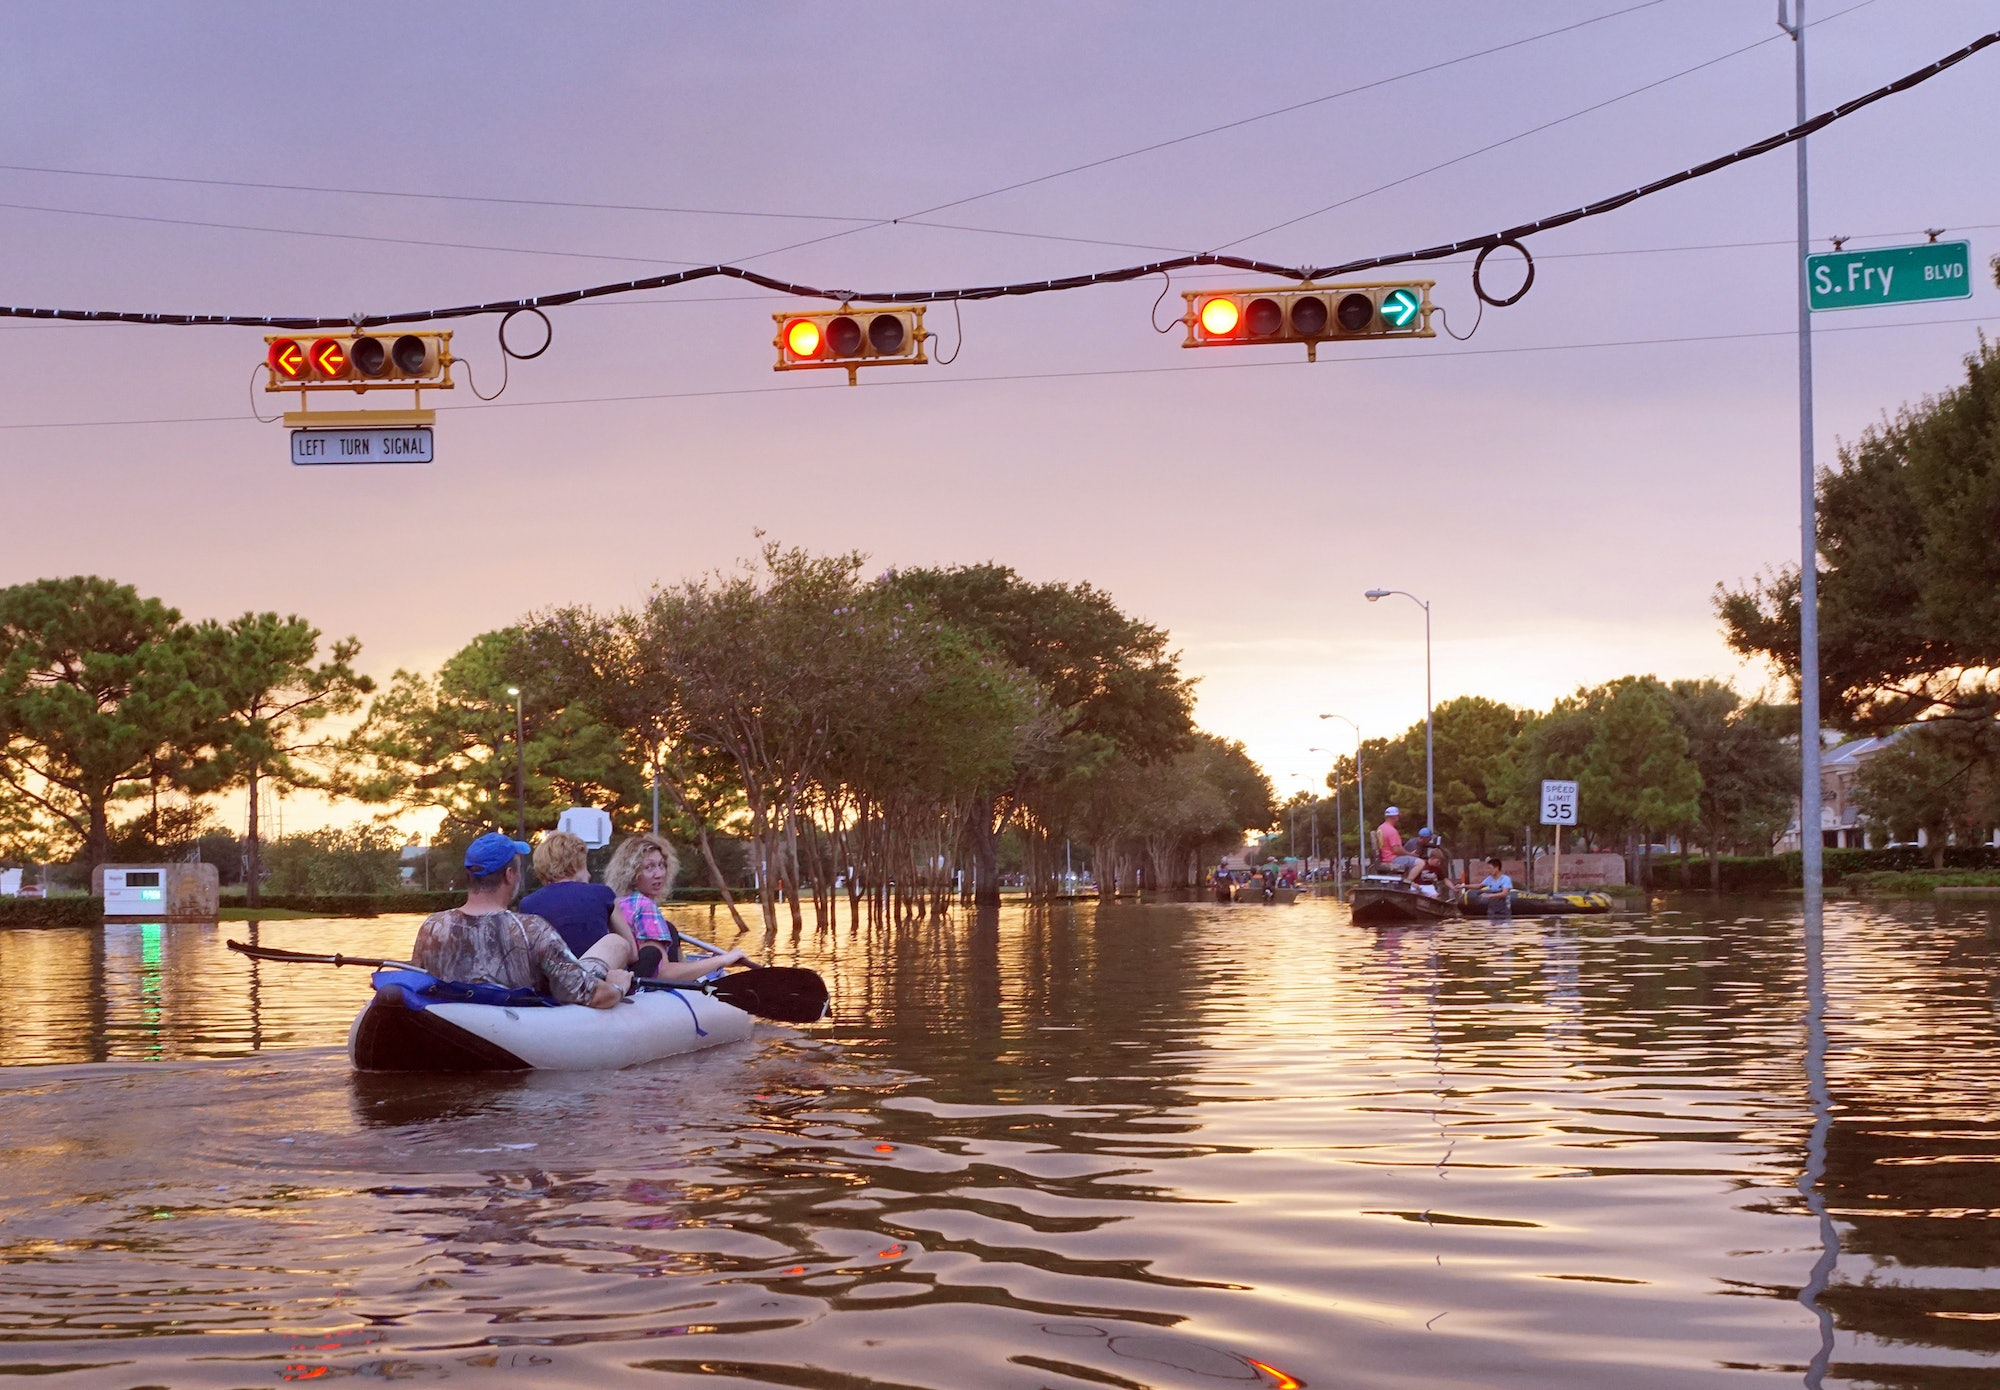 working traffic lights over flooded Houston streets and boats with people at sunset